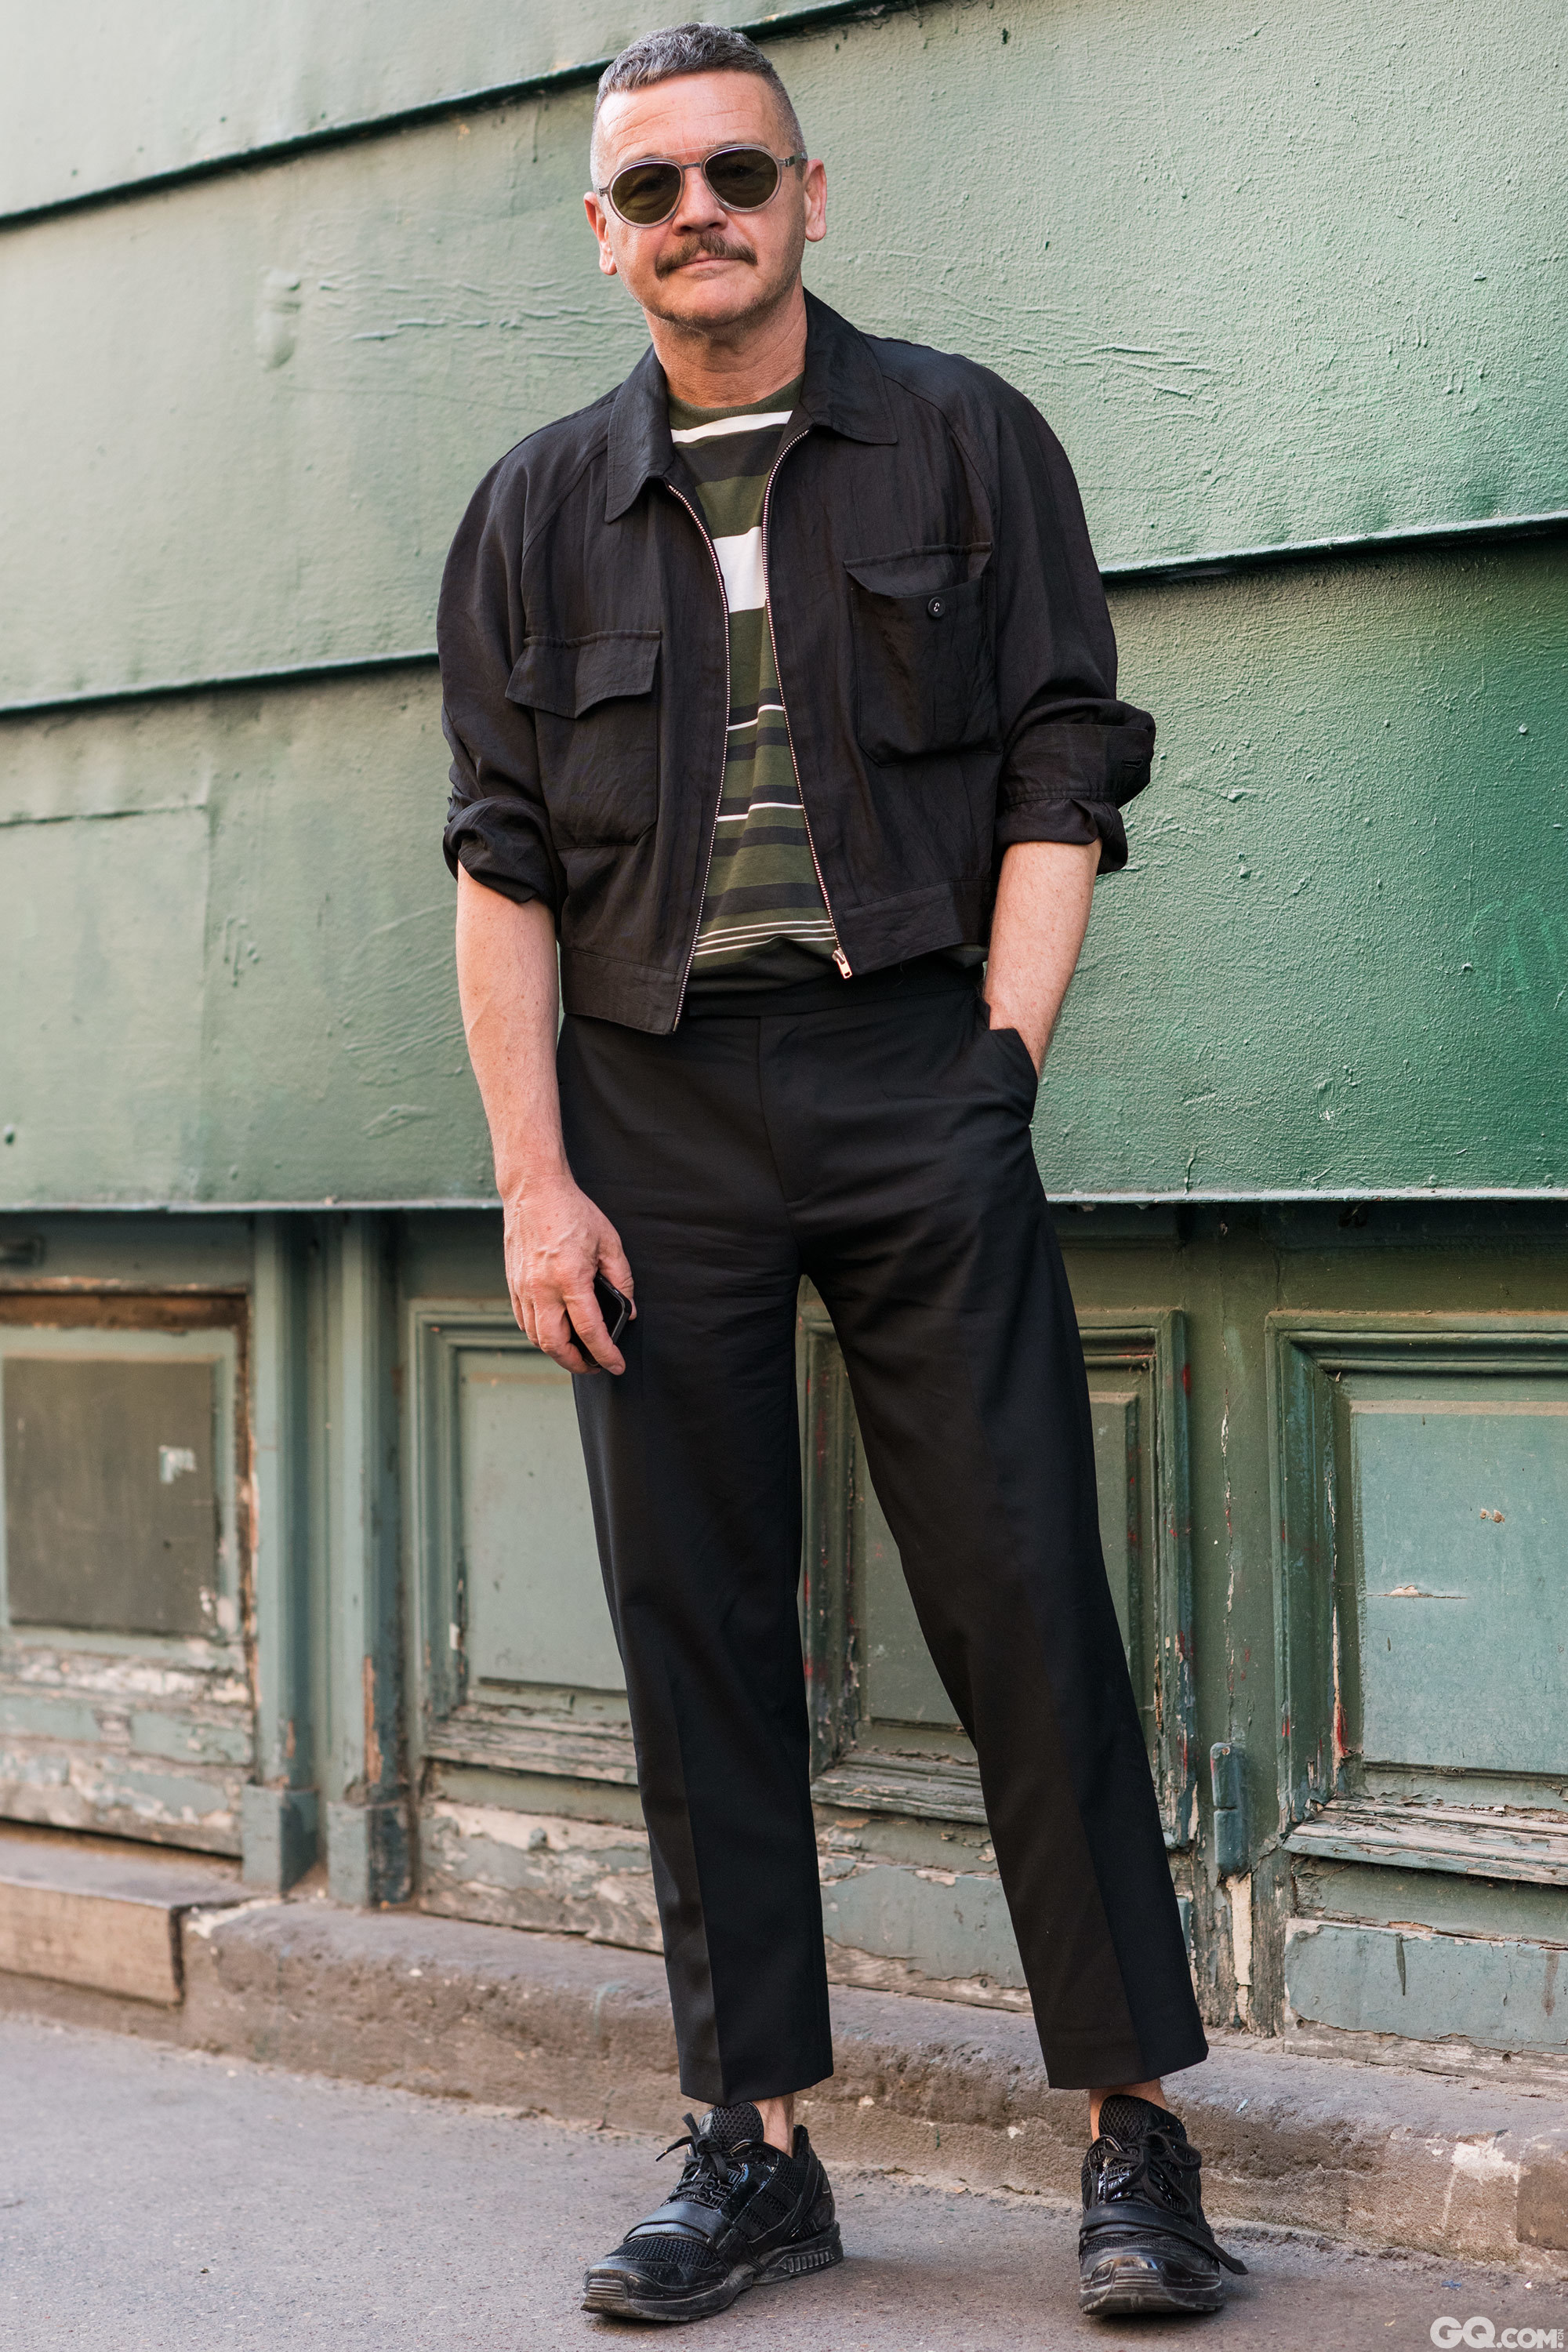 Sunglasses: Damir Doma Jacket: Comme des Carcons Shirt: Prada Pants: Raf Simons Shoes: Juun J Adidas  Inspiration: I can't be bothered to think about it. I just get pieces that fit together instinctively. (我也懒得去想怎么搭配,只是选几件适合配搭在一起的就好。)